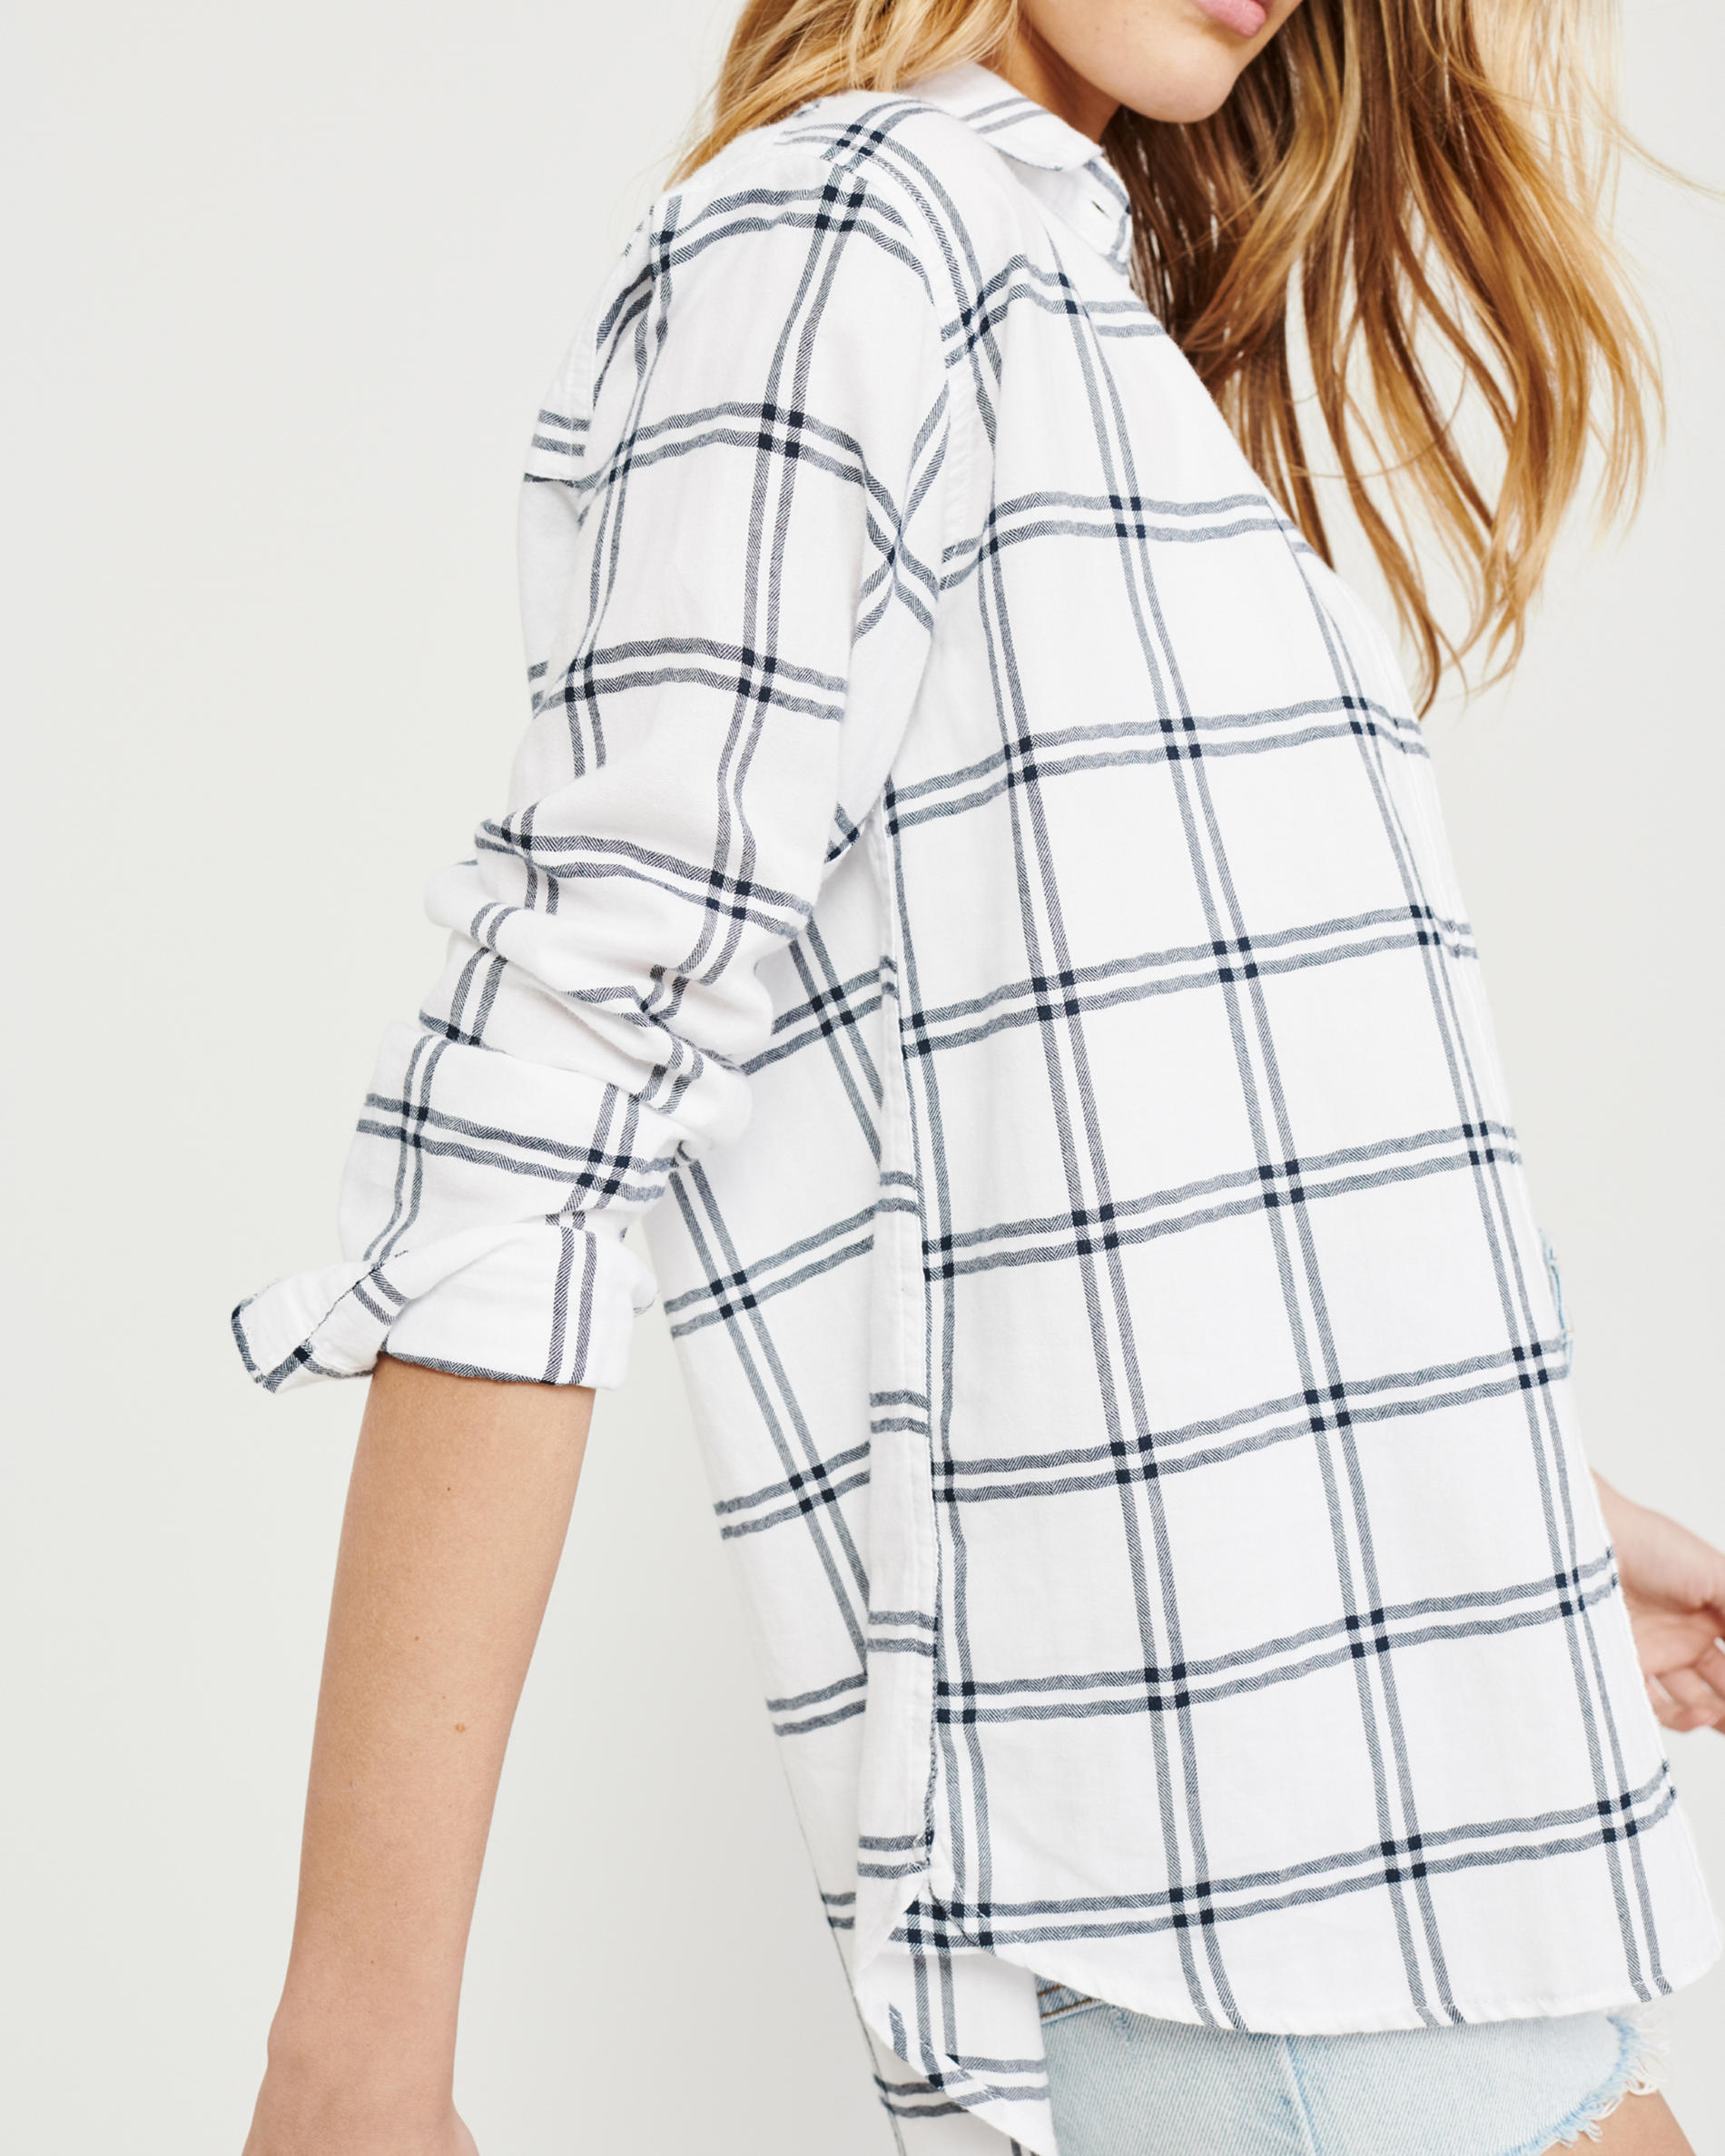 Abercrombie and Fitch White with Black Stripes Boyfriend Plaid Shirt